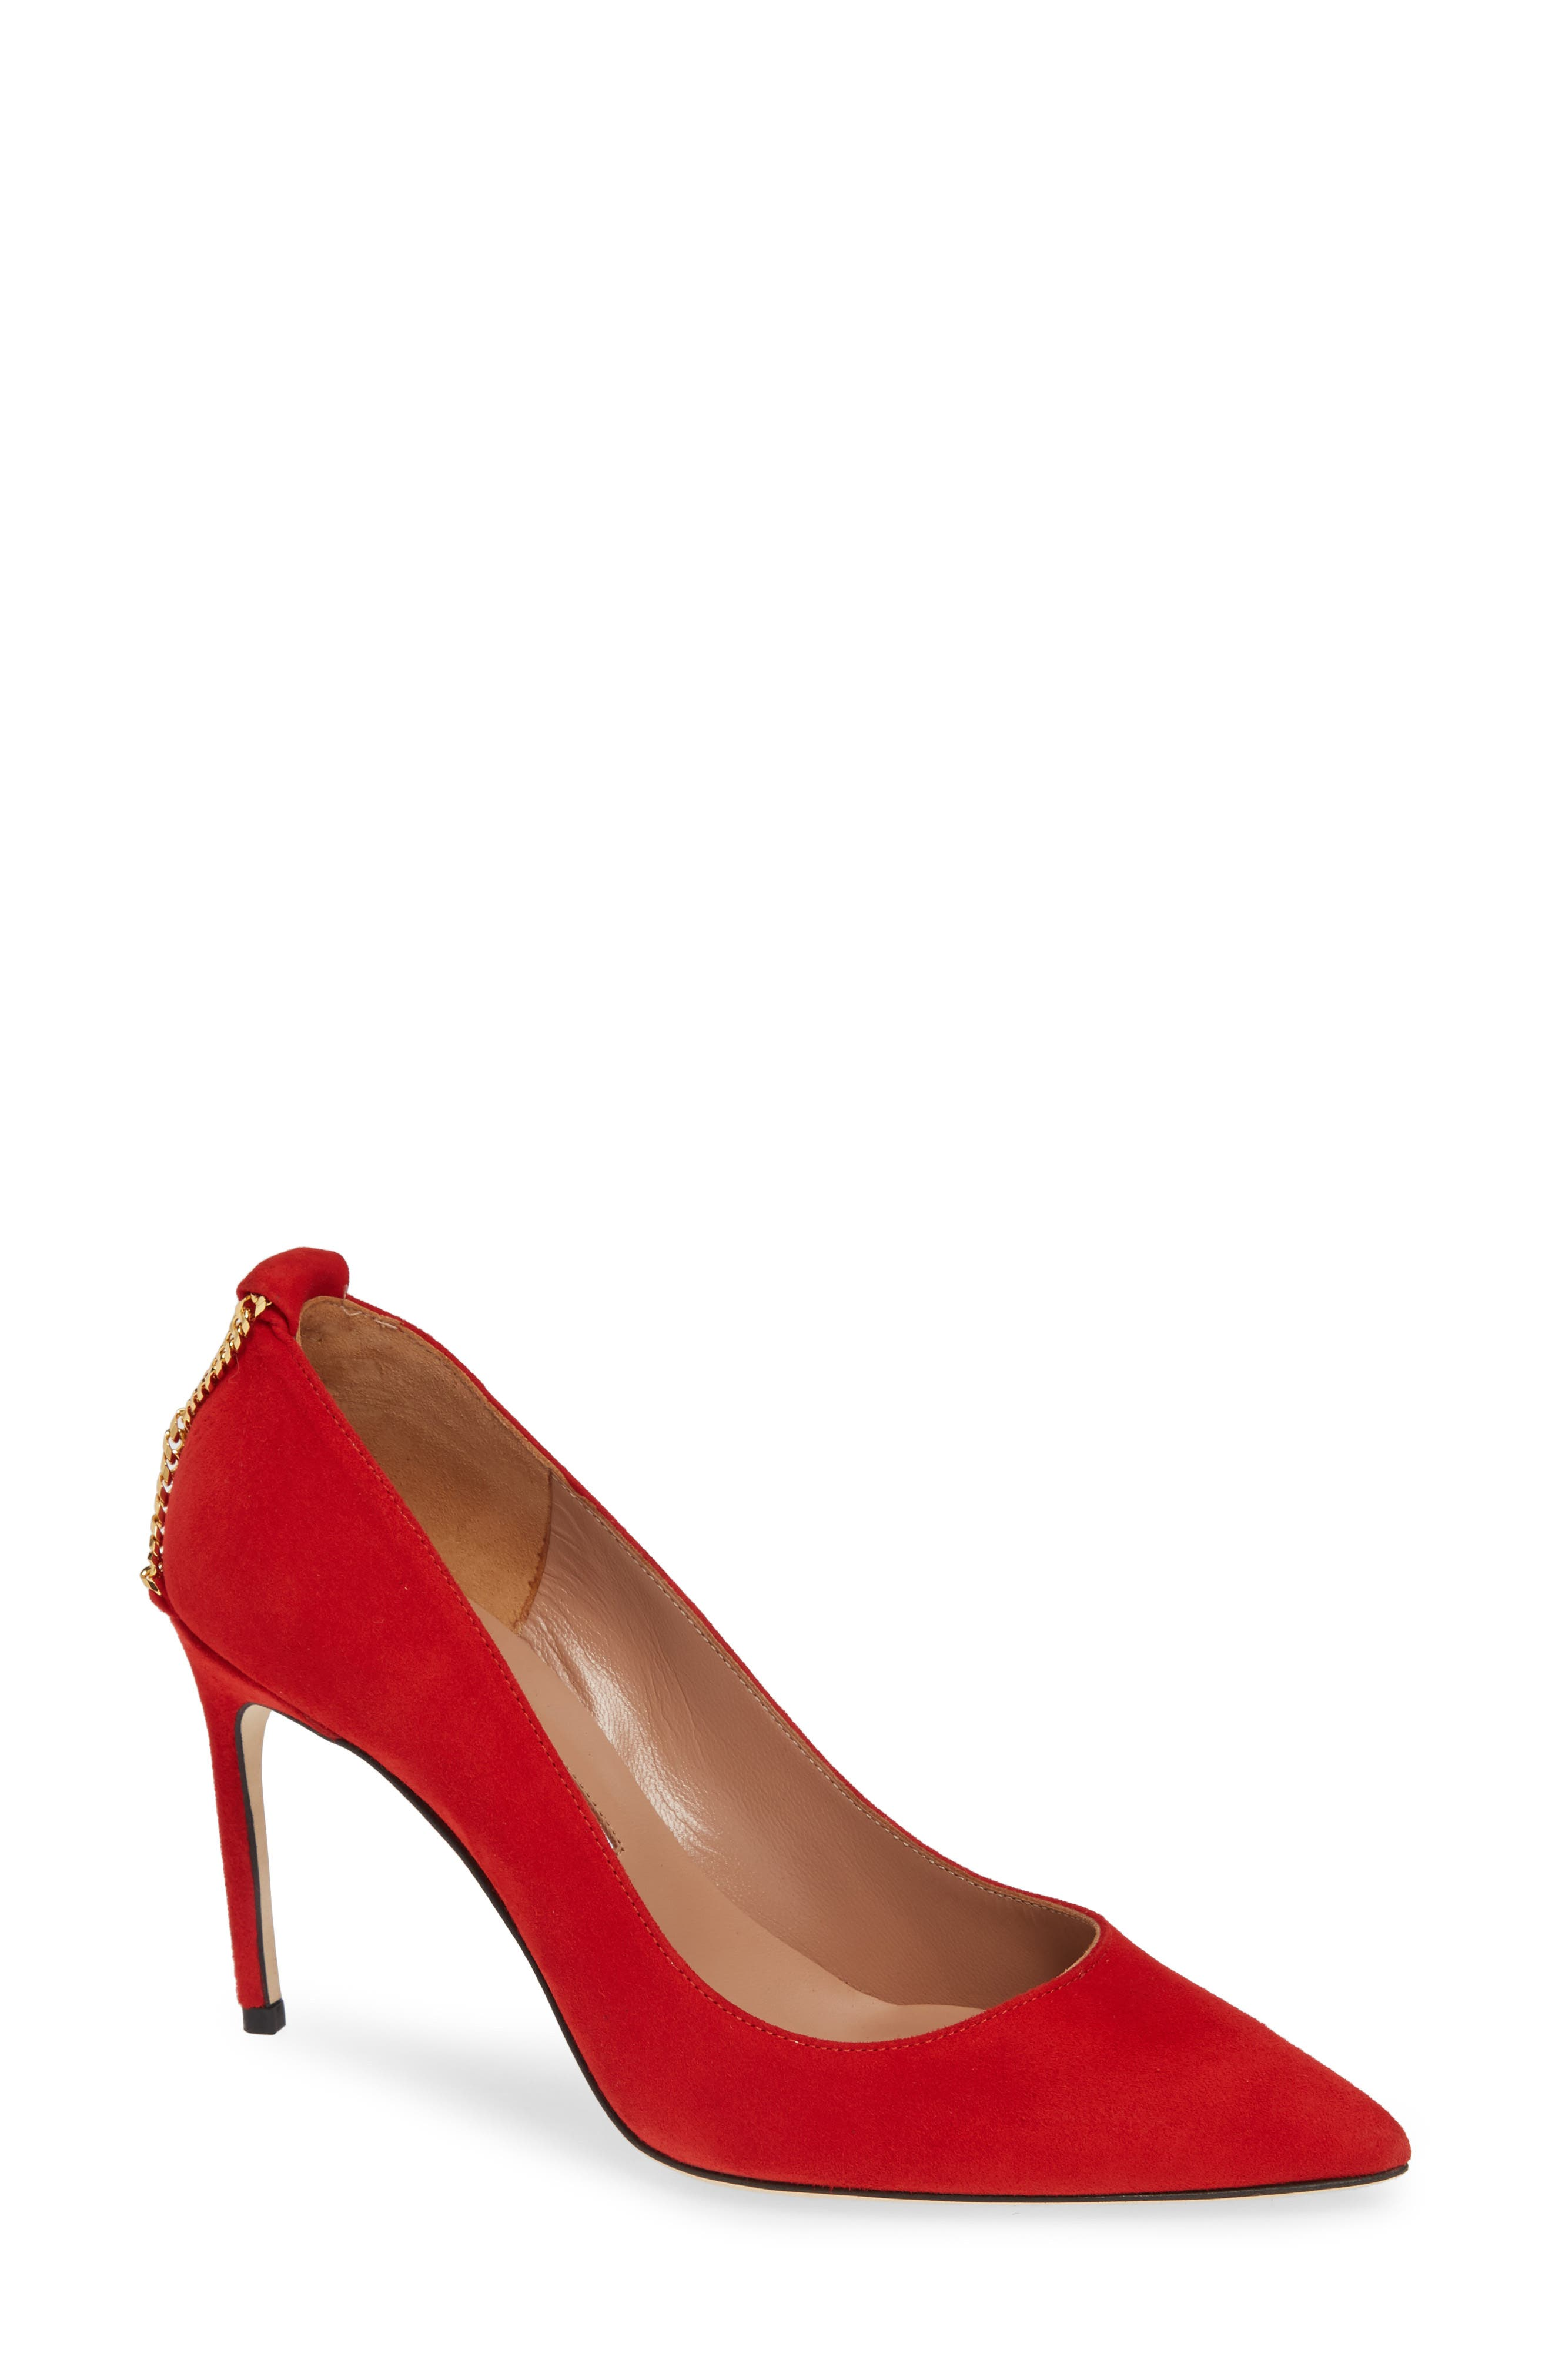 BRIAN ATWOOD Voyage Pump in Red Suede